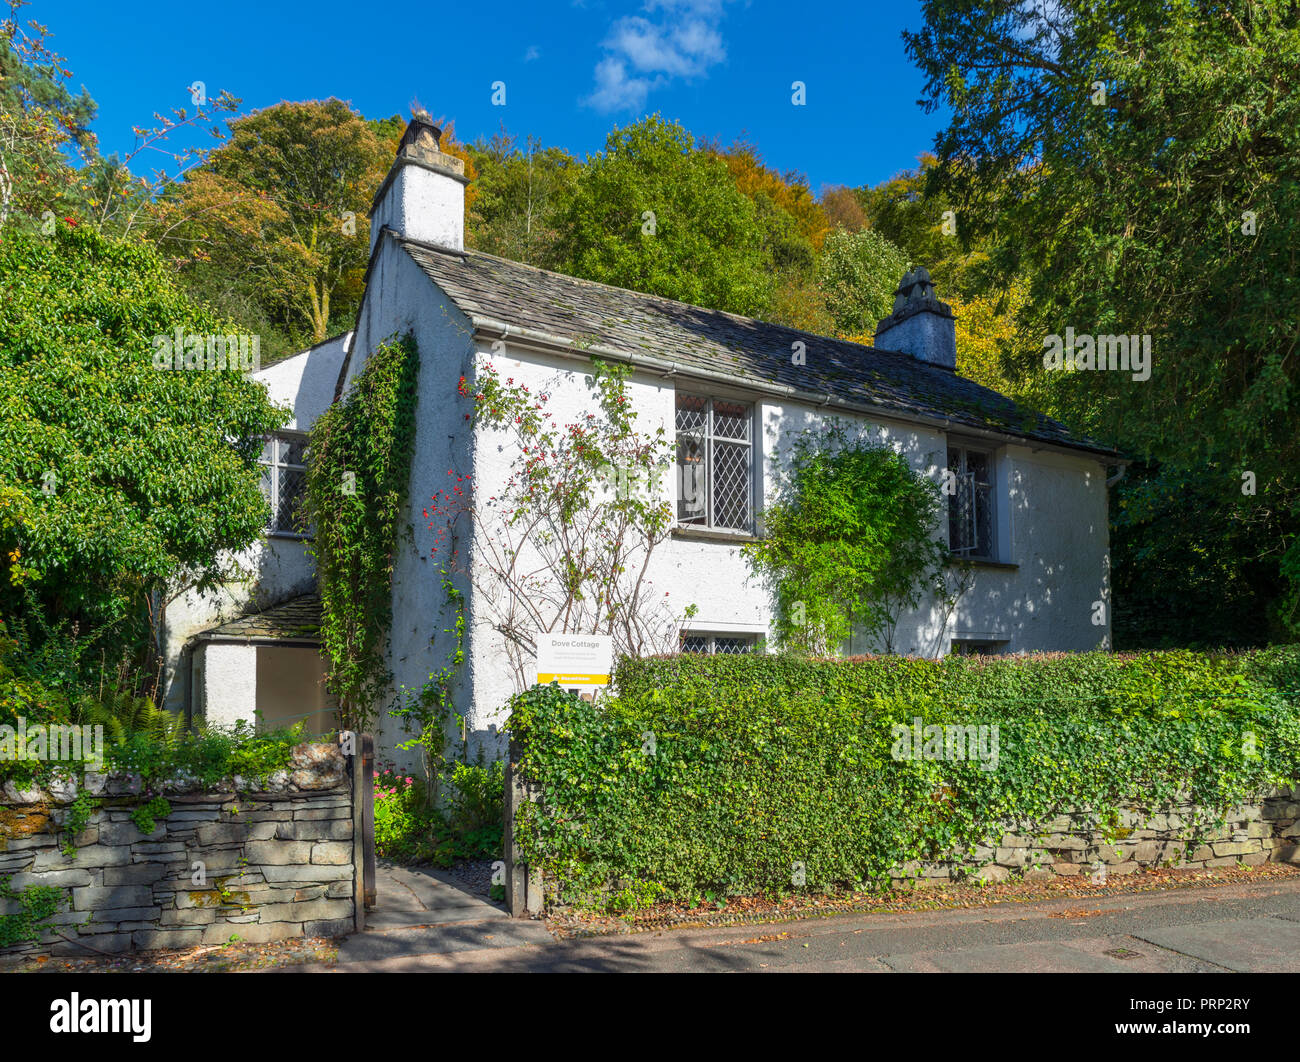 Dove Cottage, home of the poet William Wordsworth, Grasmere, Lake District National Park, Cumbria, UK - Stock Image